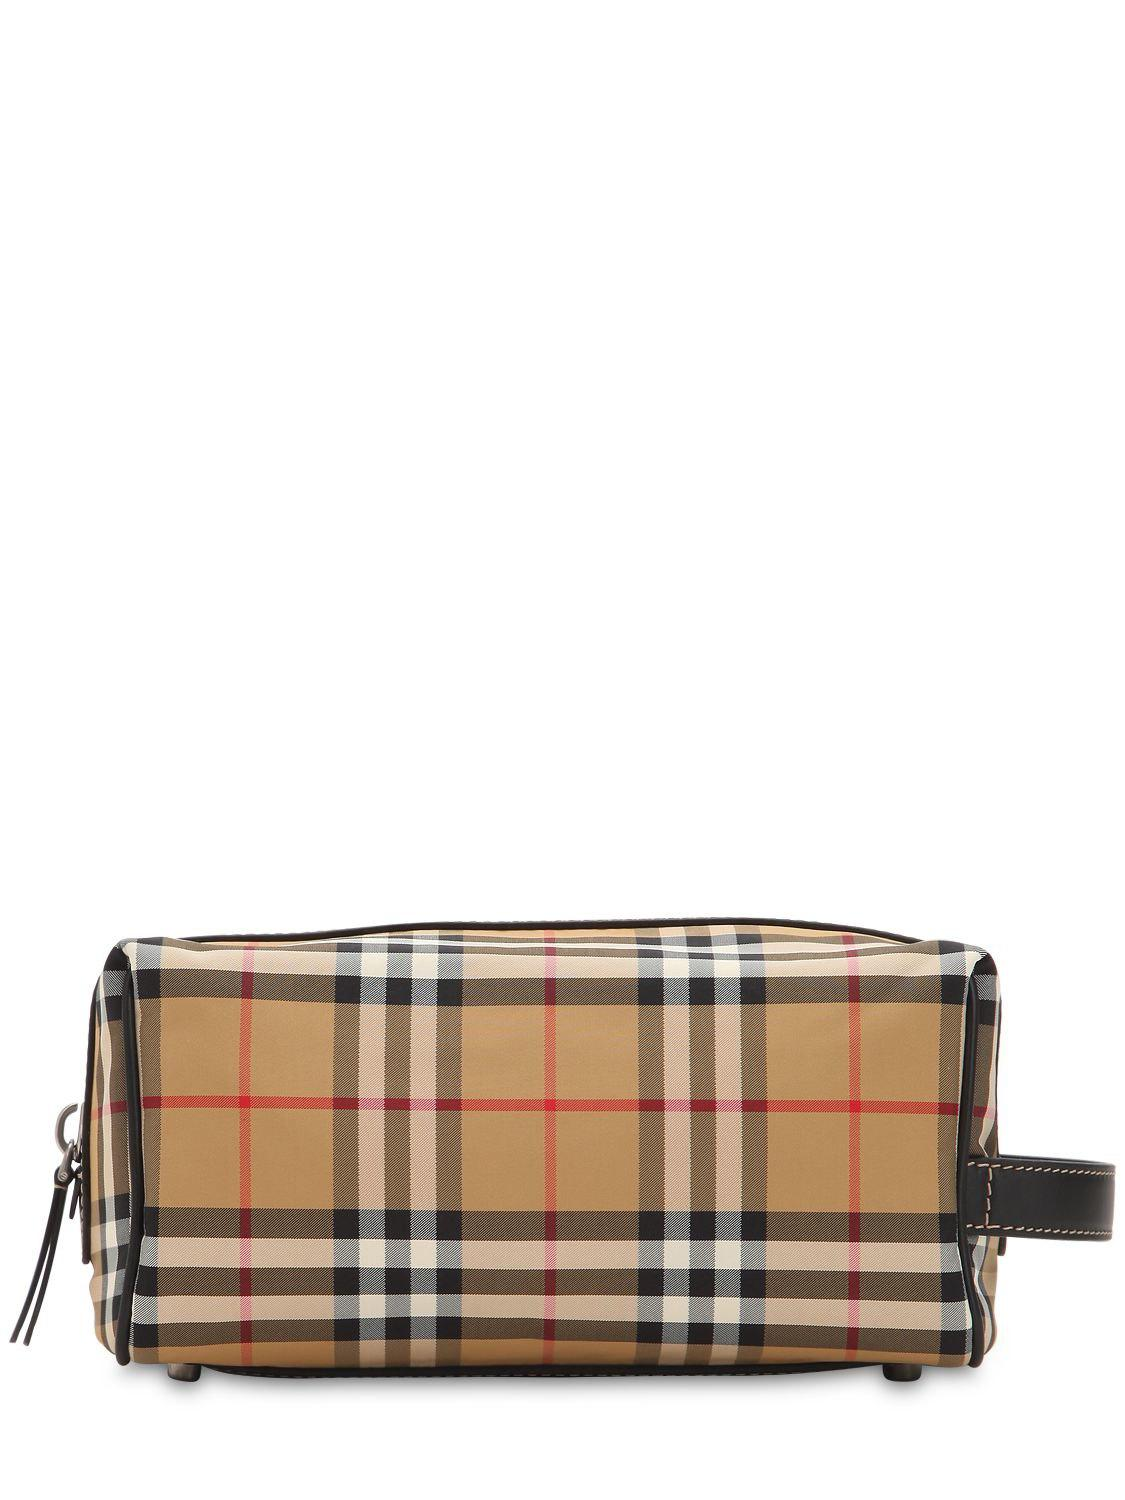 04ece4467d7e Burberry Checked Nylon Toiletry Bag for Men - Save 2% - Lyst